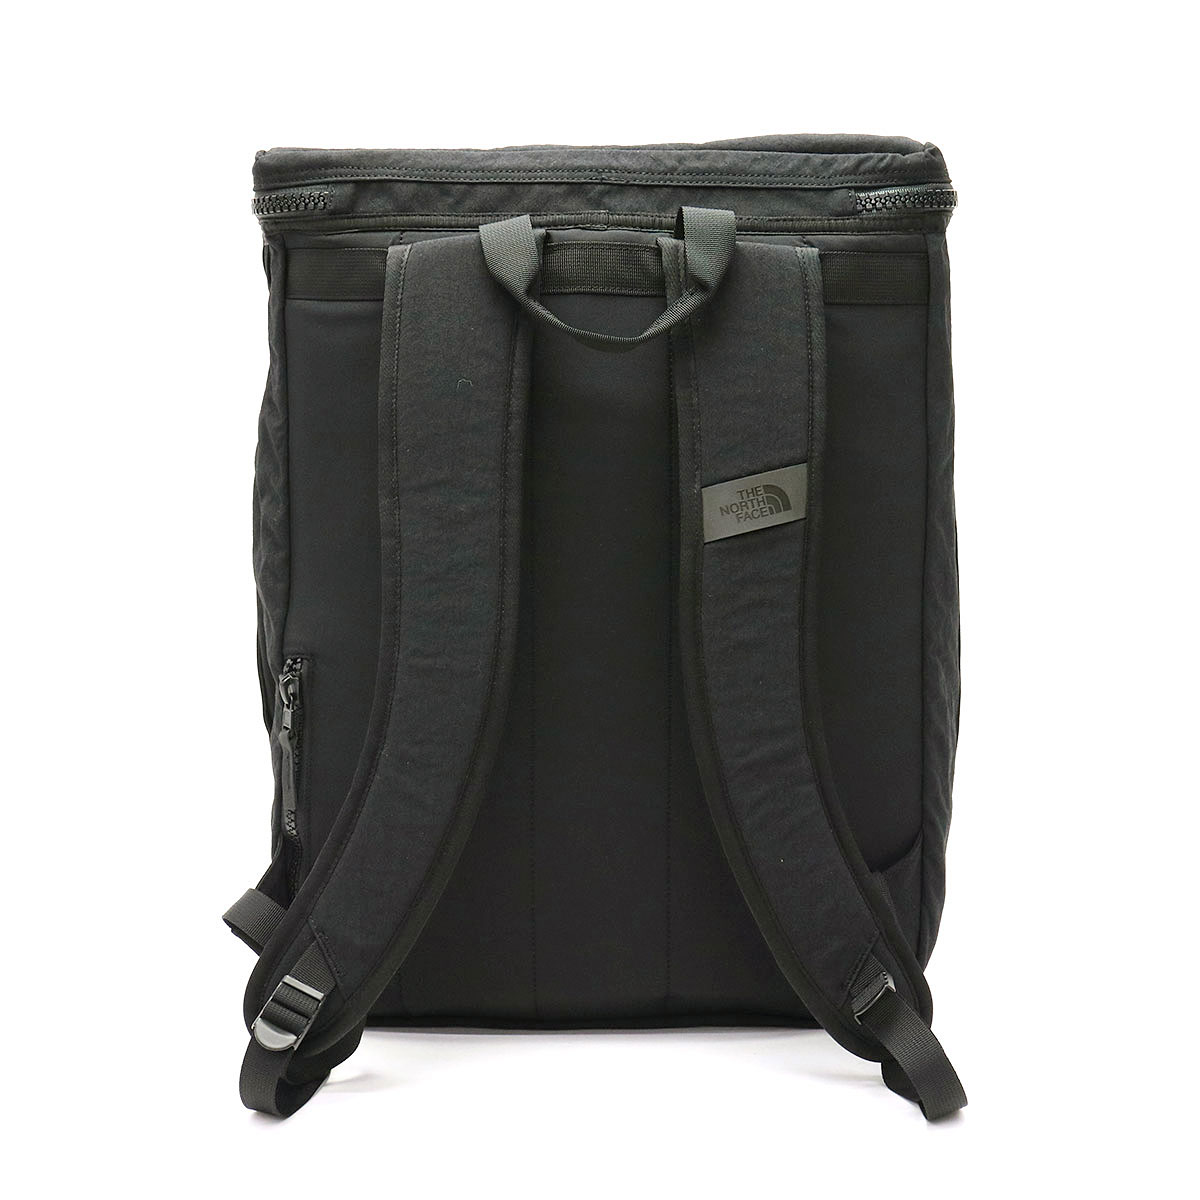 Superb Sale 30 Off Authorized Dealers The North Face Journeys Fuse Box Backpack Rucksack Commuting Commuting To School Nm81653 Wiring 101 Taclepimsautoservicenl